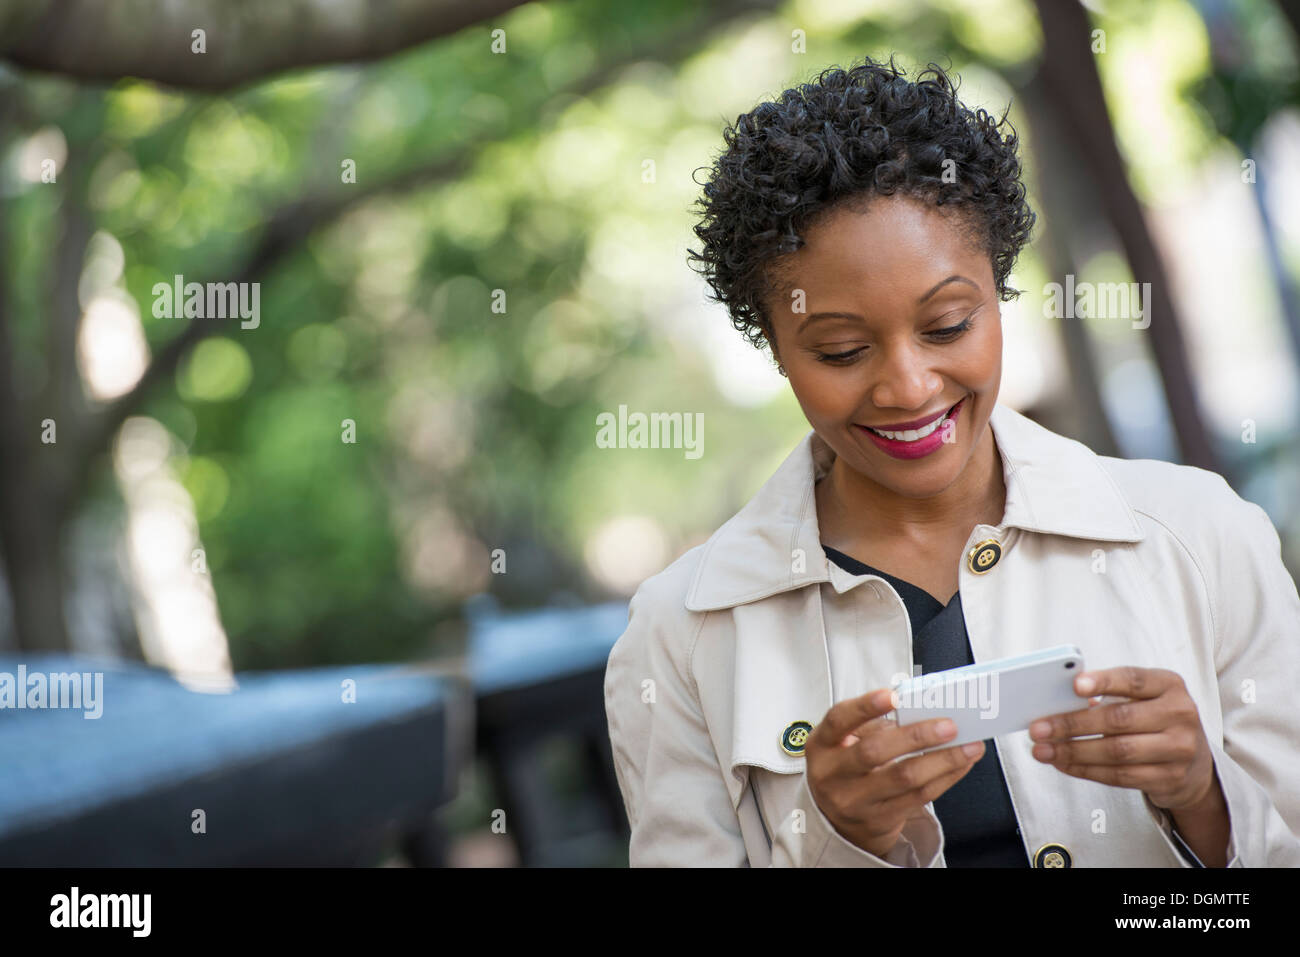 City. A woman outdoors in the park, checking her smart phone. - Stock Image